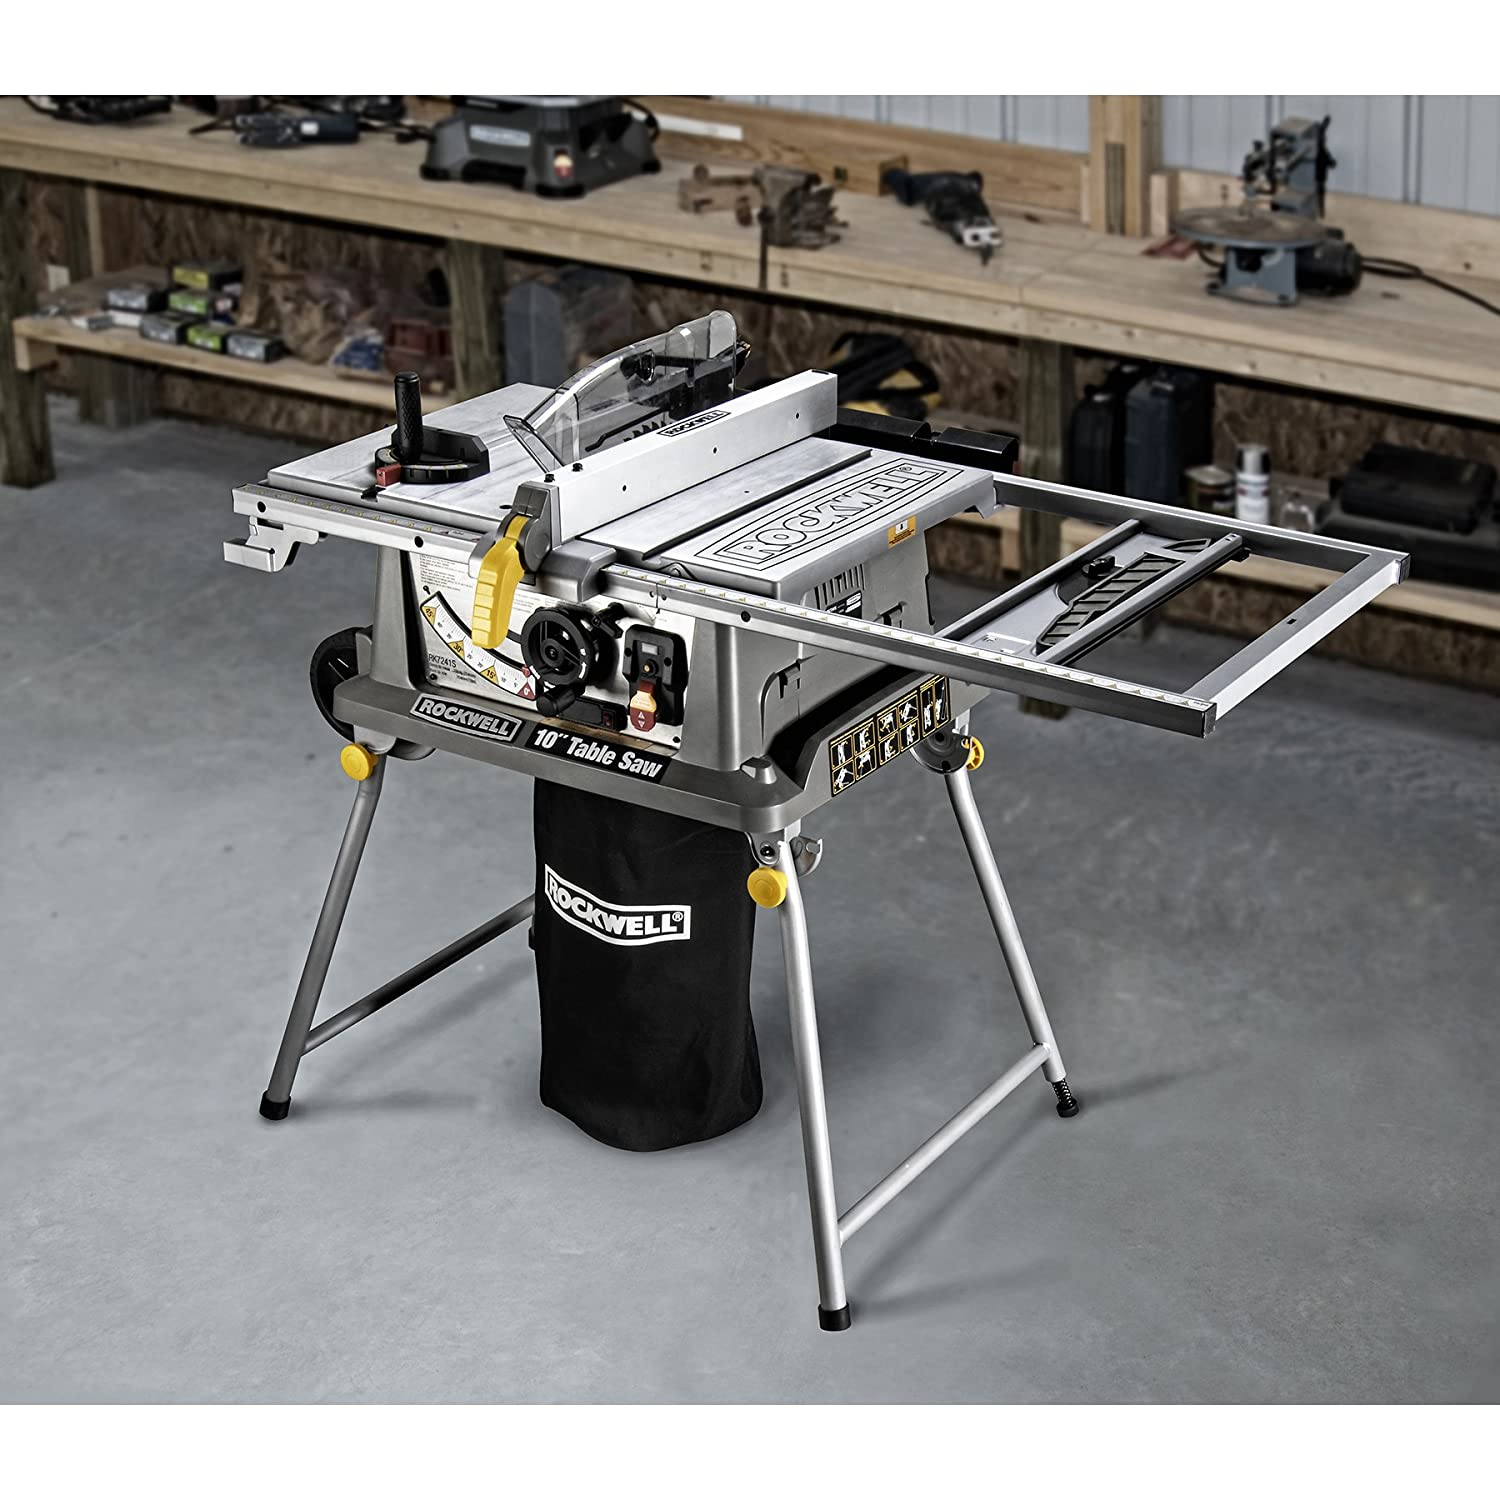 Rockwell rk7241s table saw with laser power table saws amazon greentooth Images